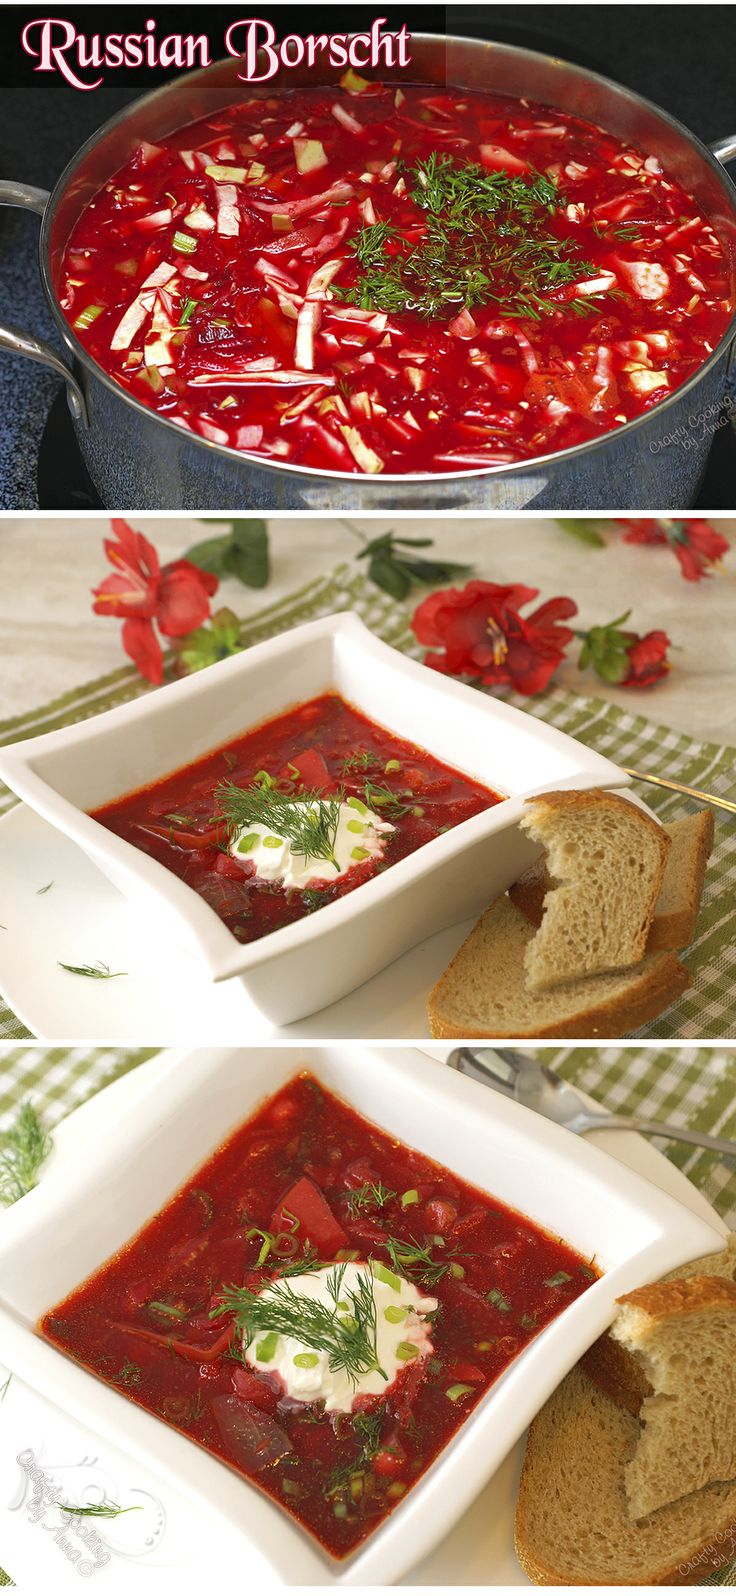 Meatless, Hearty and Healthy - Russian Borscht!